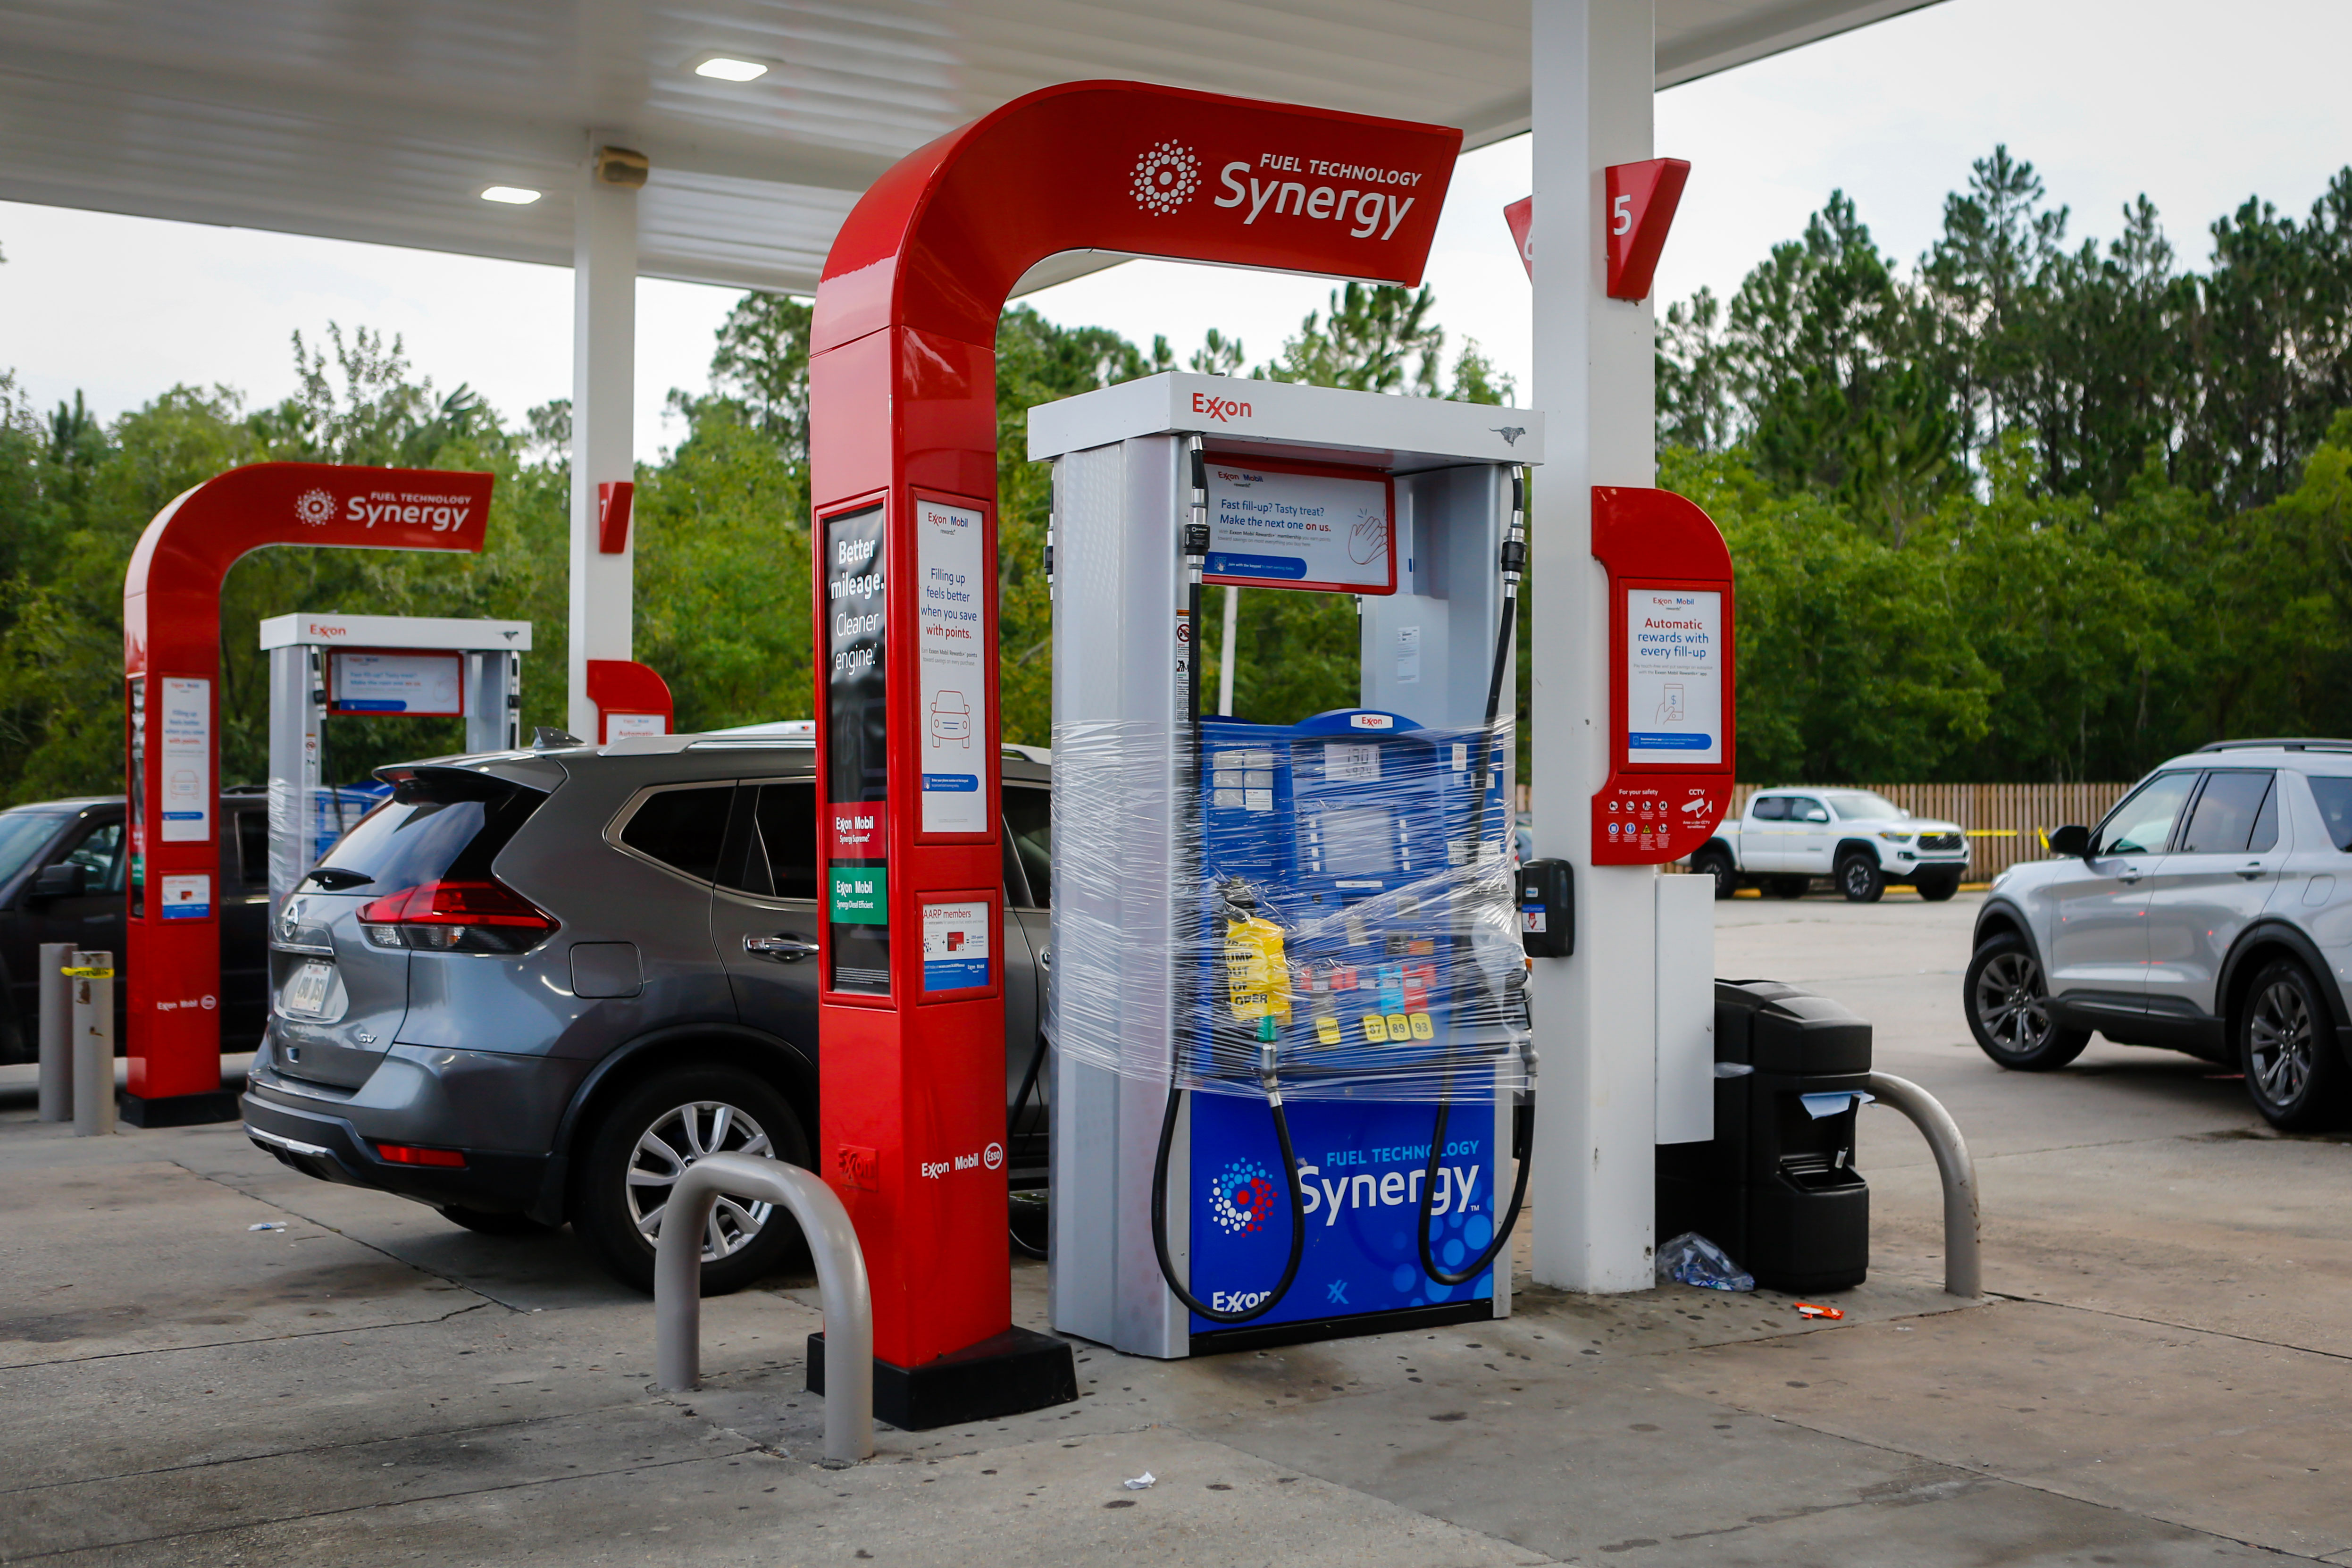 A pump is out of service at a gas station in Hancock County, Mississippi, on September 1.